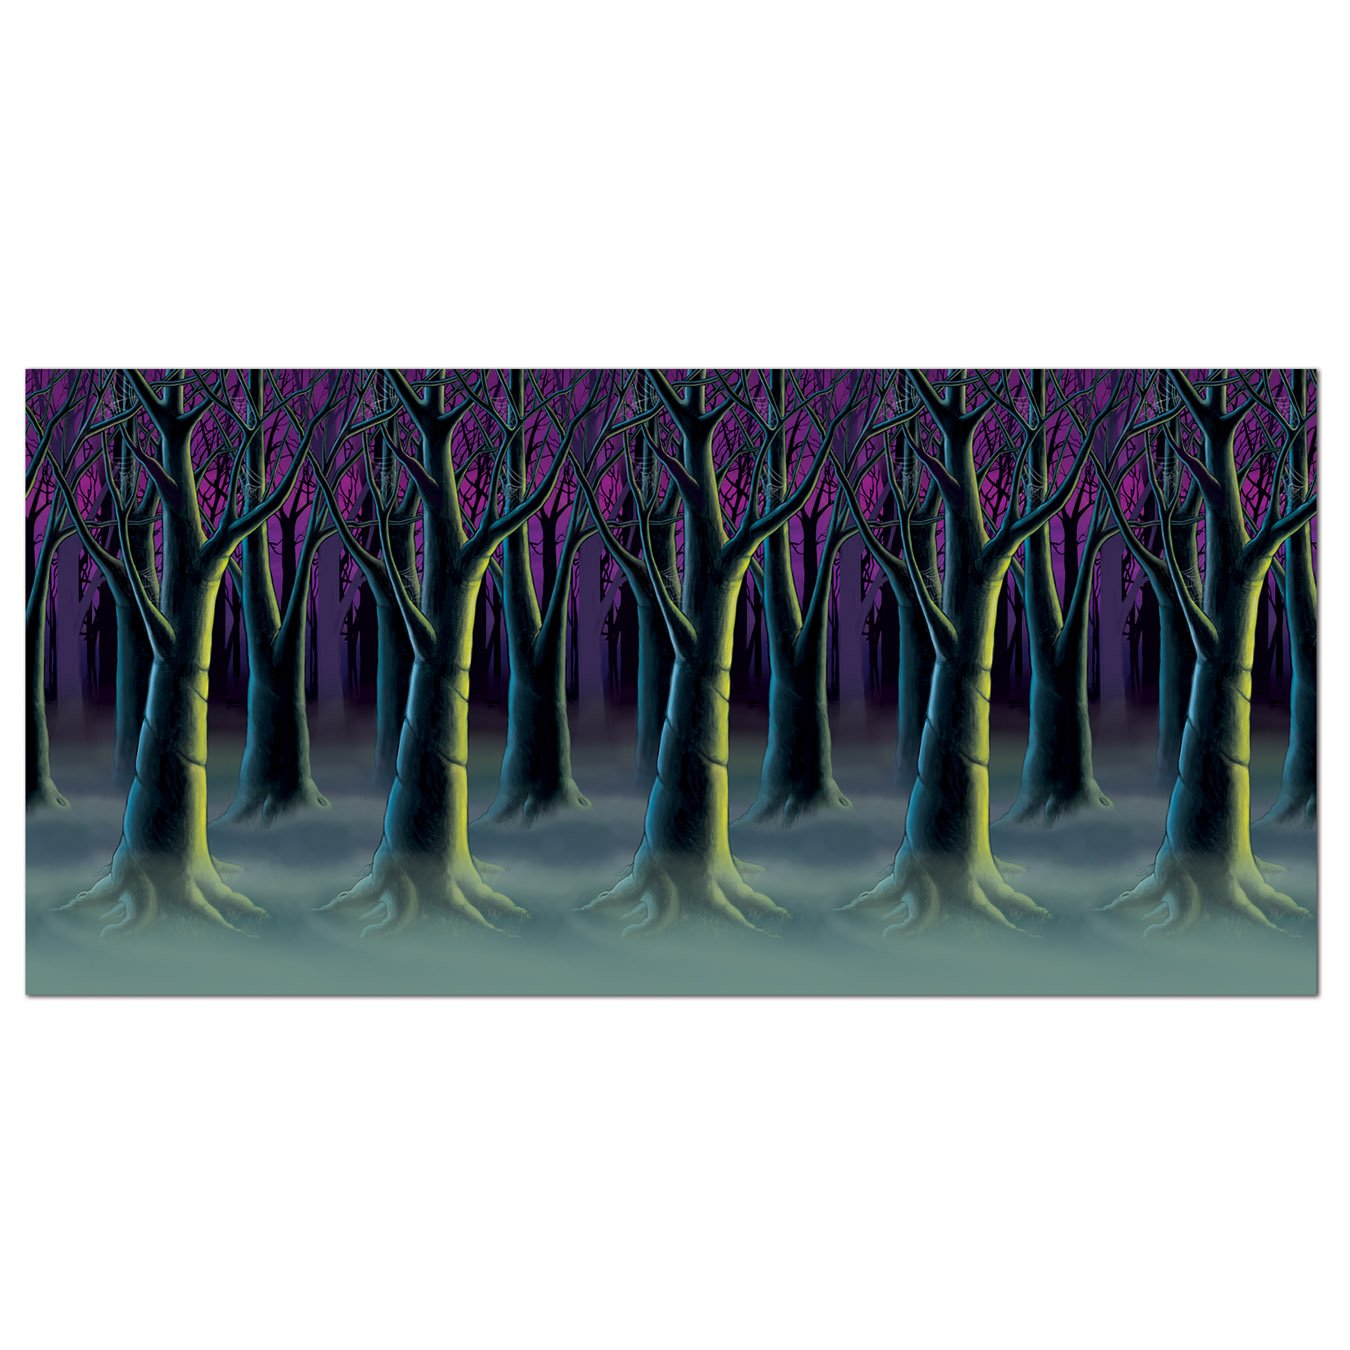 Beistle Spooky Forest Trees Backdrop, 4-Feet by 30-Feet by Beistle